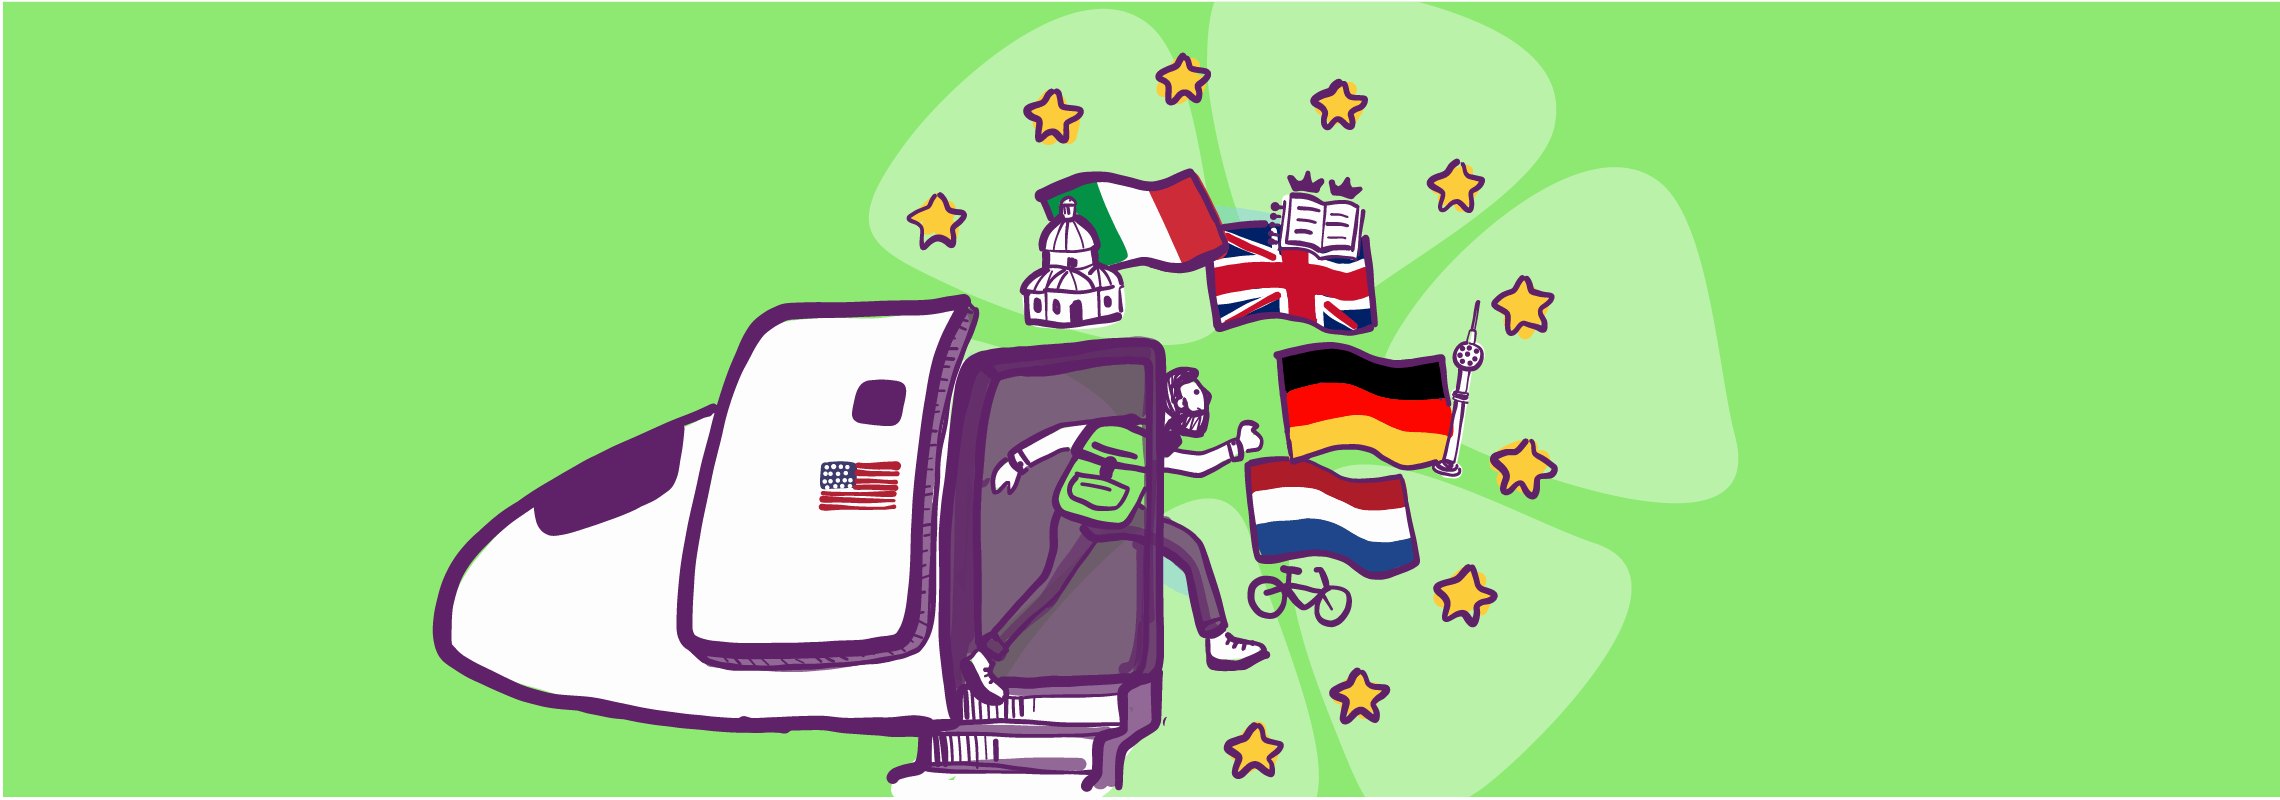 Drawing of backpacker entering a plane with a number of destinations being display by the flags of Italy, UK, Germany, and Netherlands.